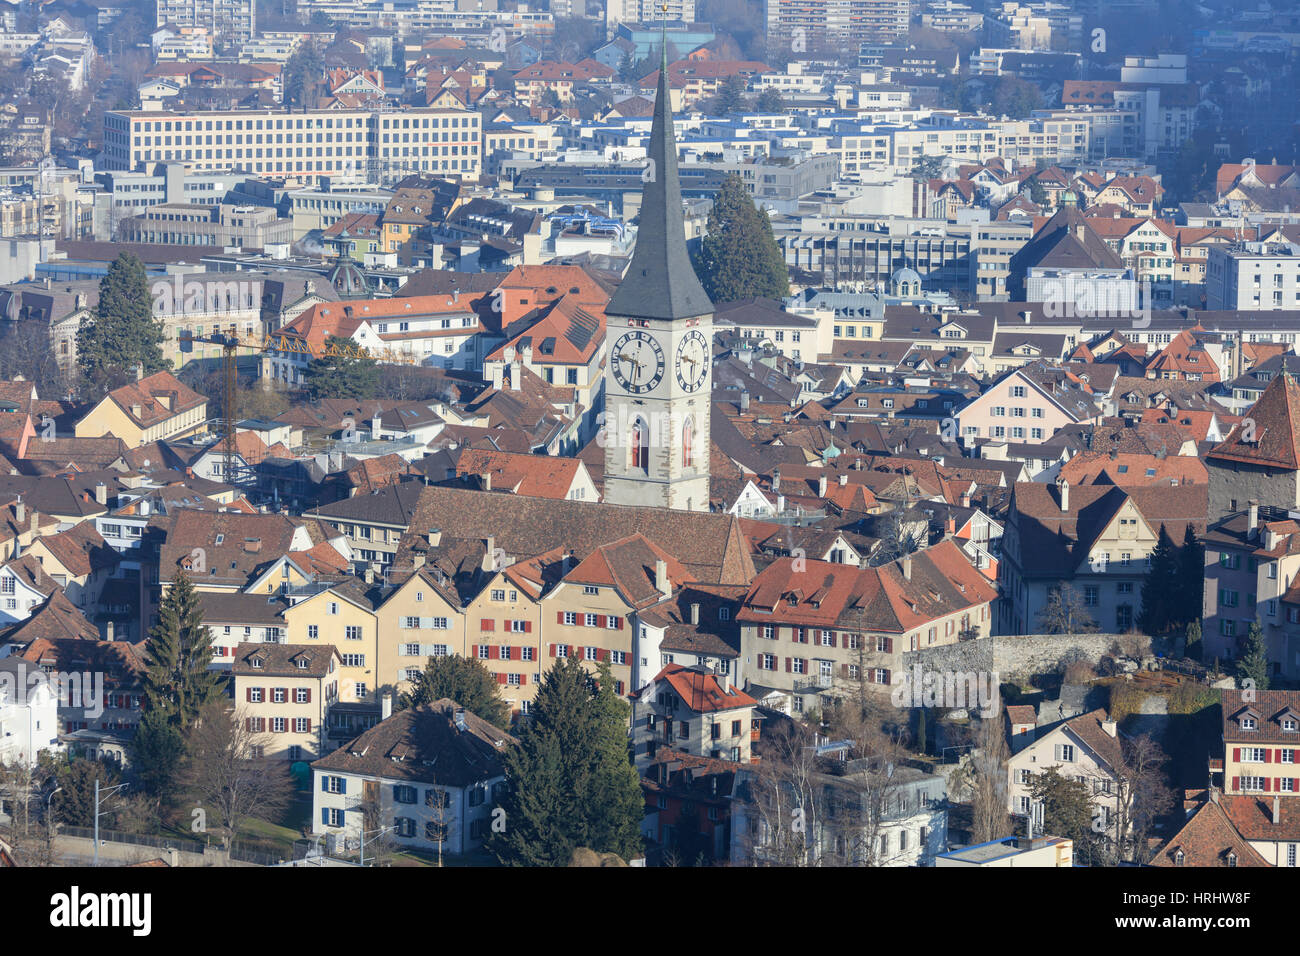 View of bell tower of Church of St. Martin and the city of Chur, district of Plessur, Canton of Graubunden, Switzerland - Stock Image